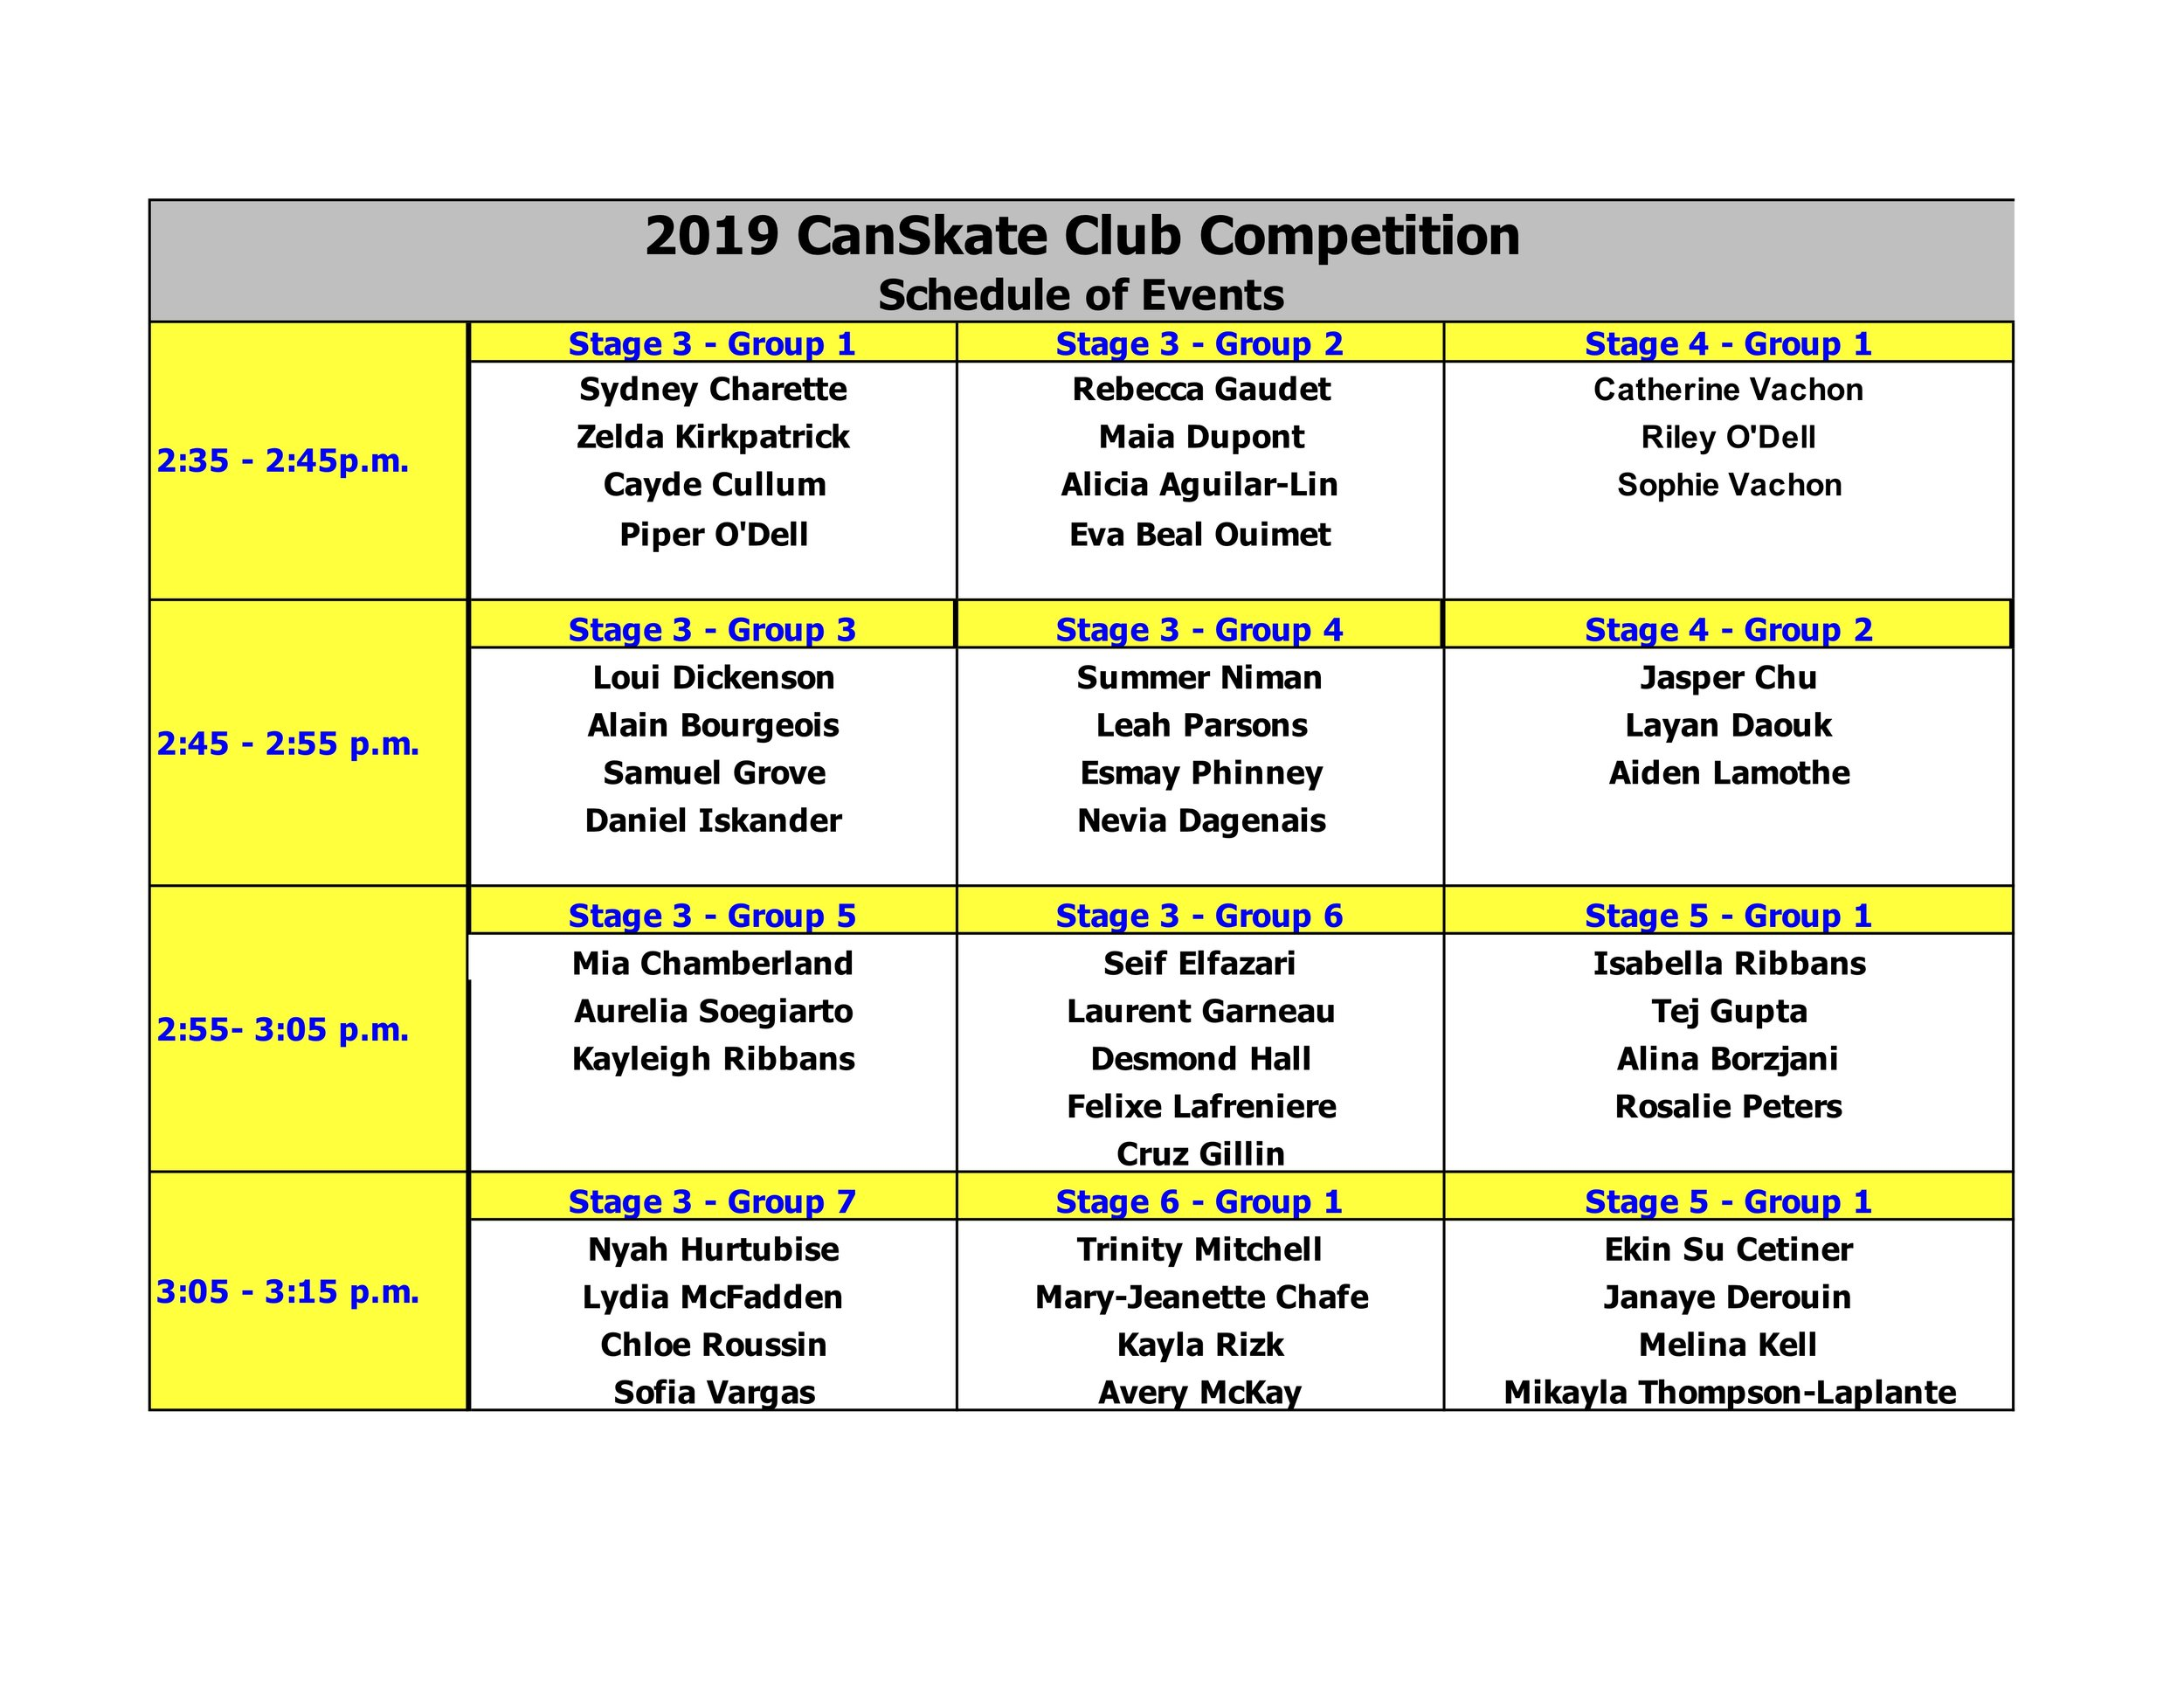 2019_CanSkate_club_competition_group_list_20190212.jpg